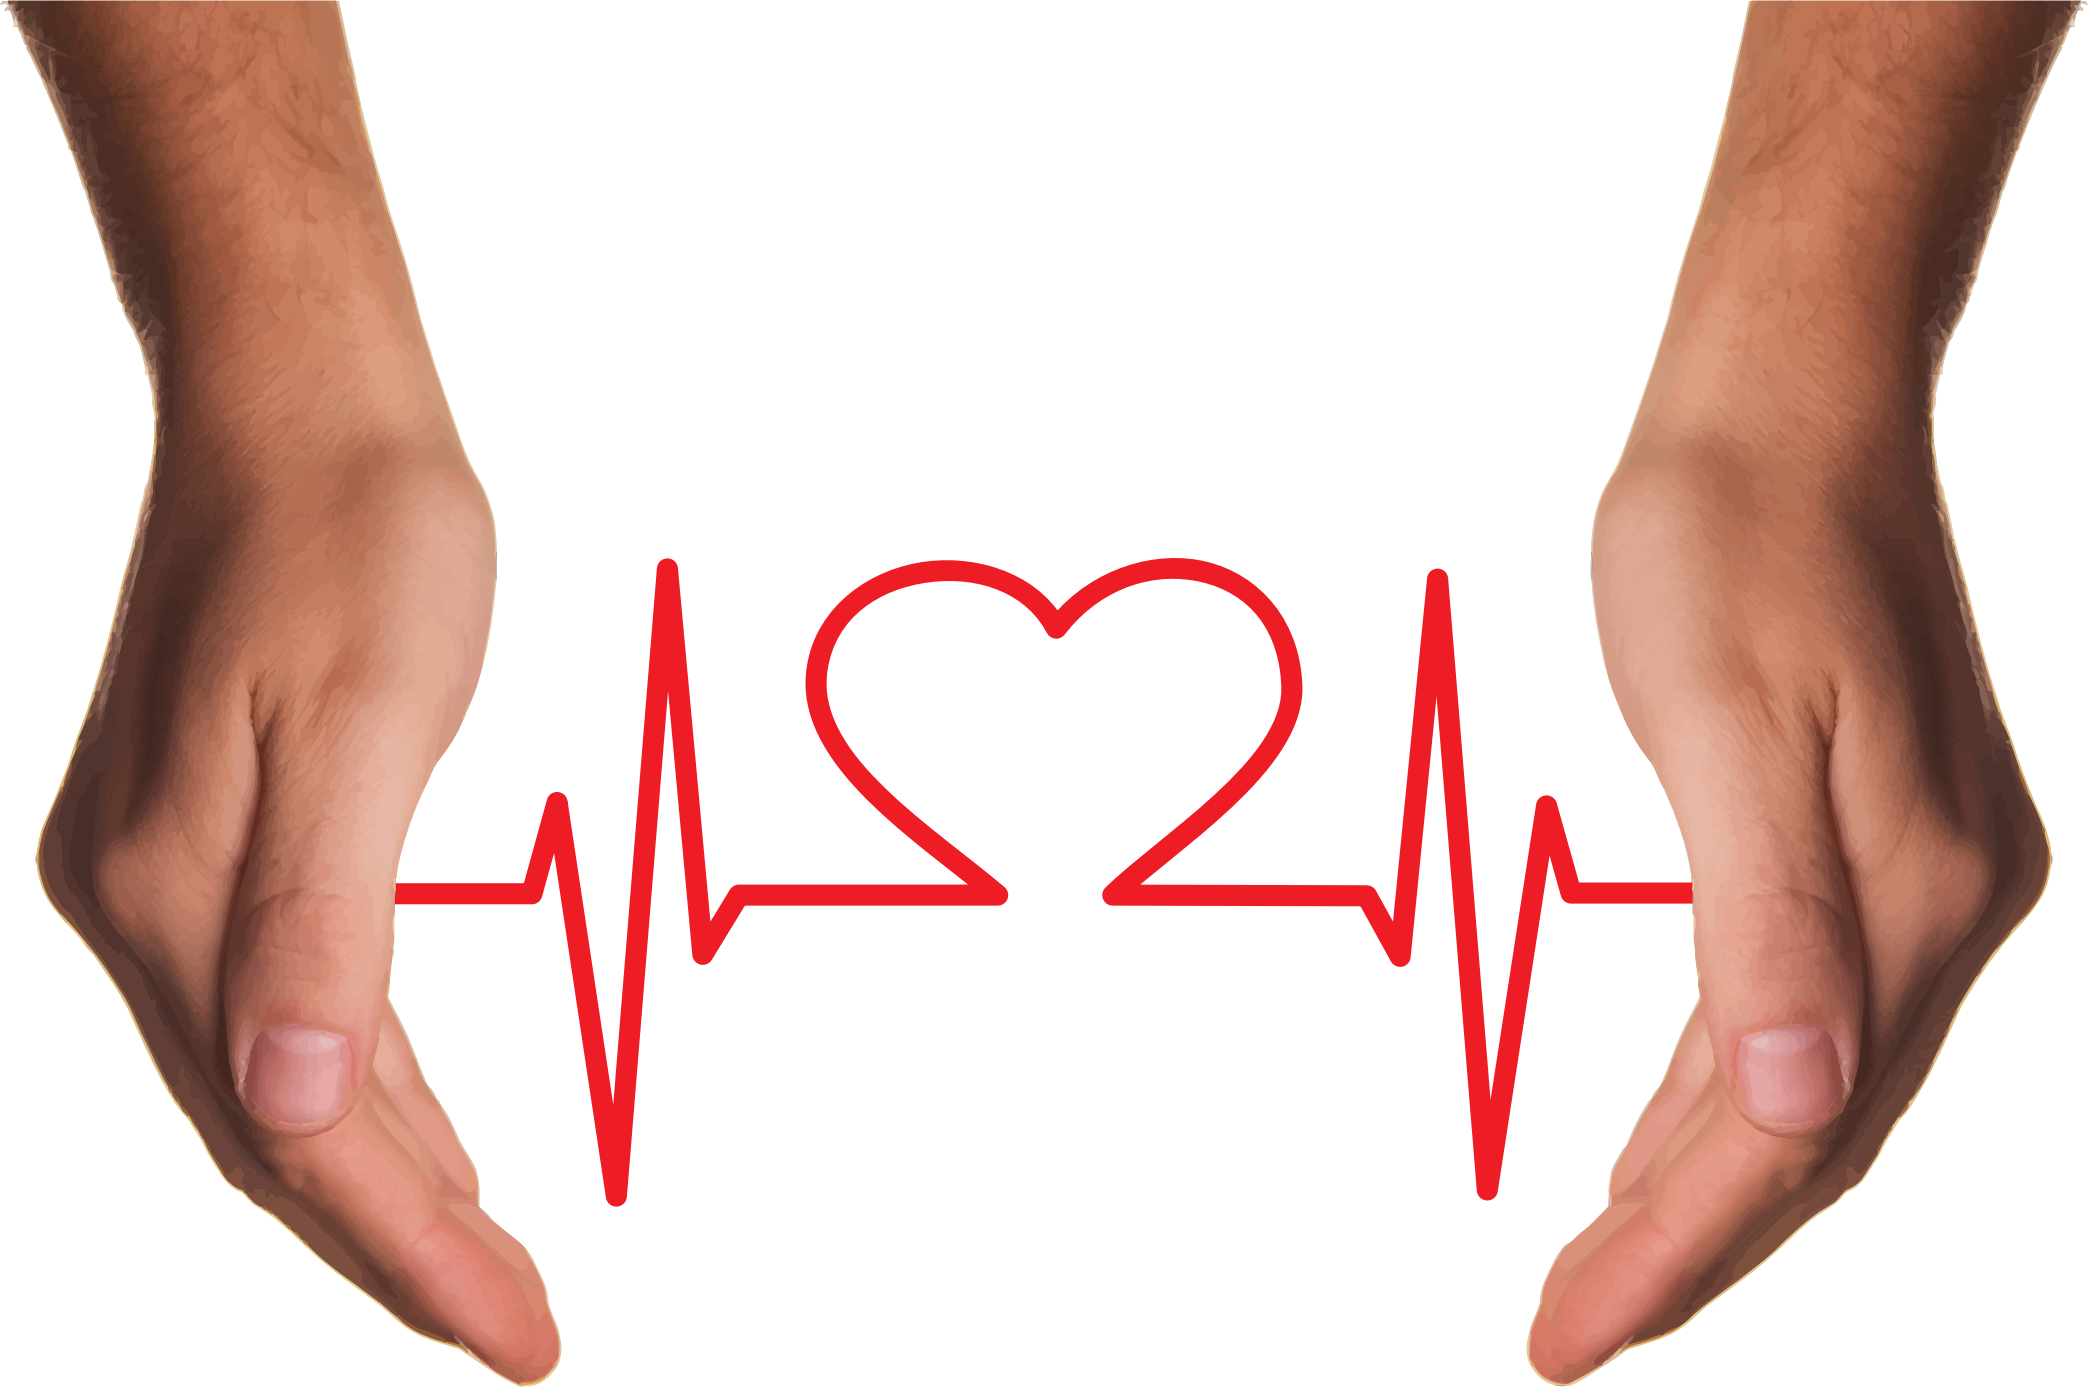 Clipart - Cupping Hands Heart EKG